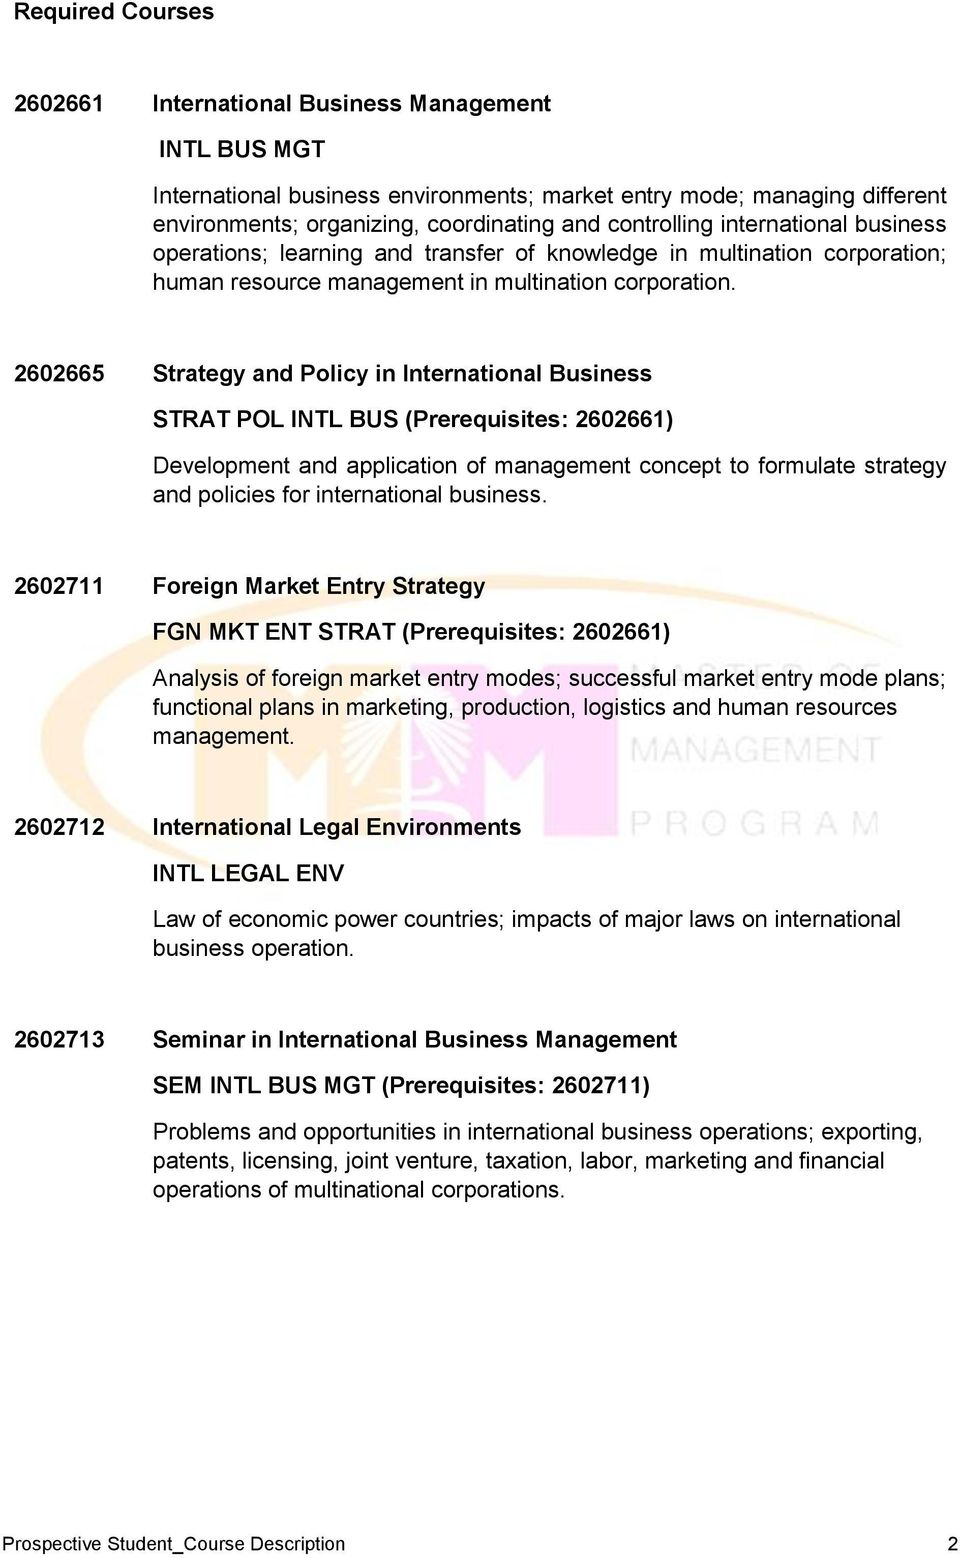 2602665 Strategy and Policy in International Business STRAT POL INTL BUS (Prerequisites: 2602661) Development and application of management concept to formulate strategy and policies for